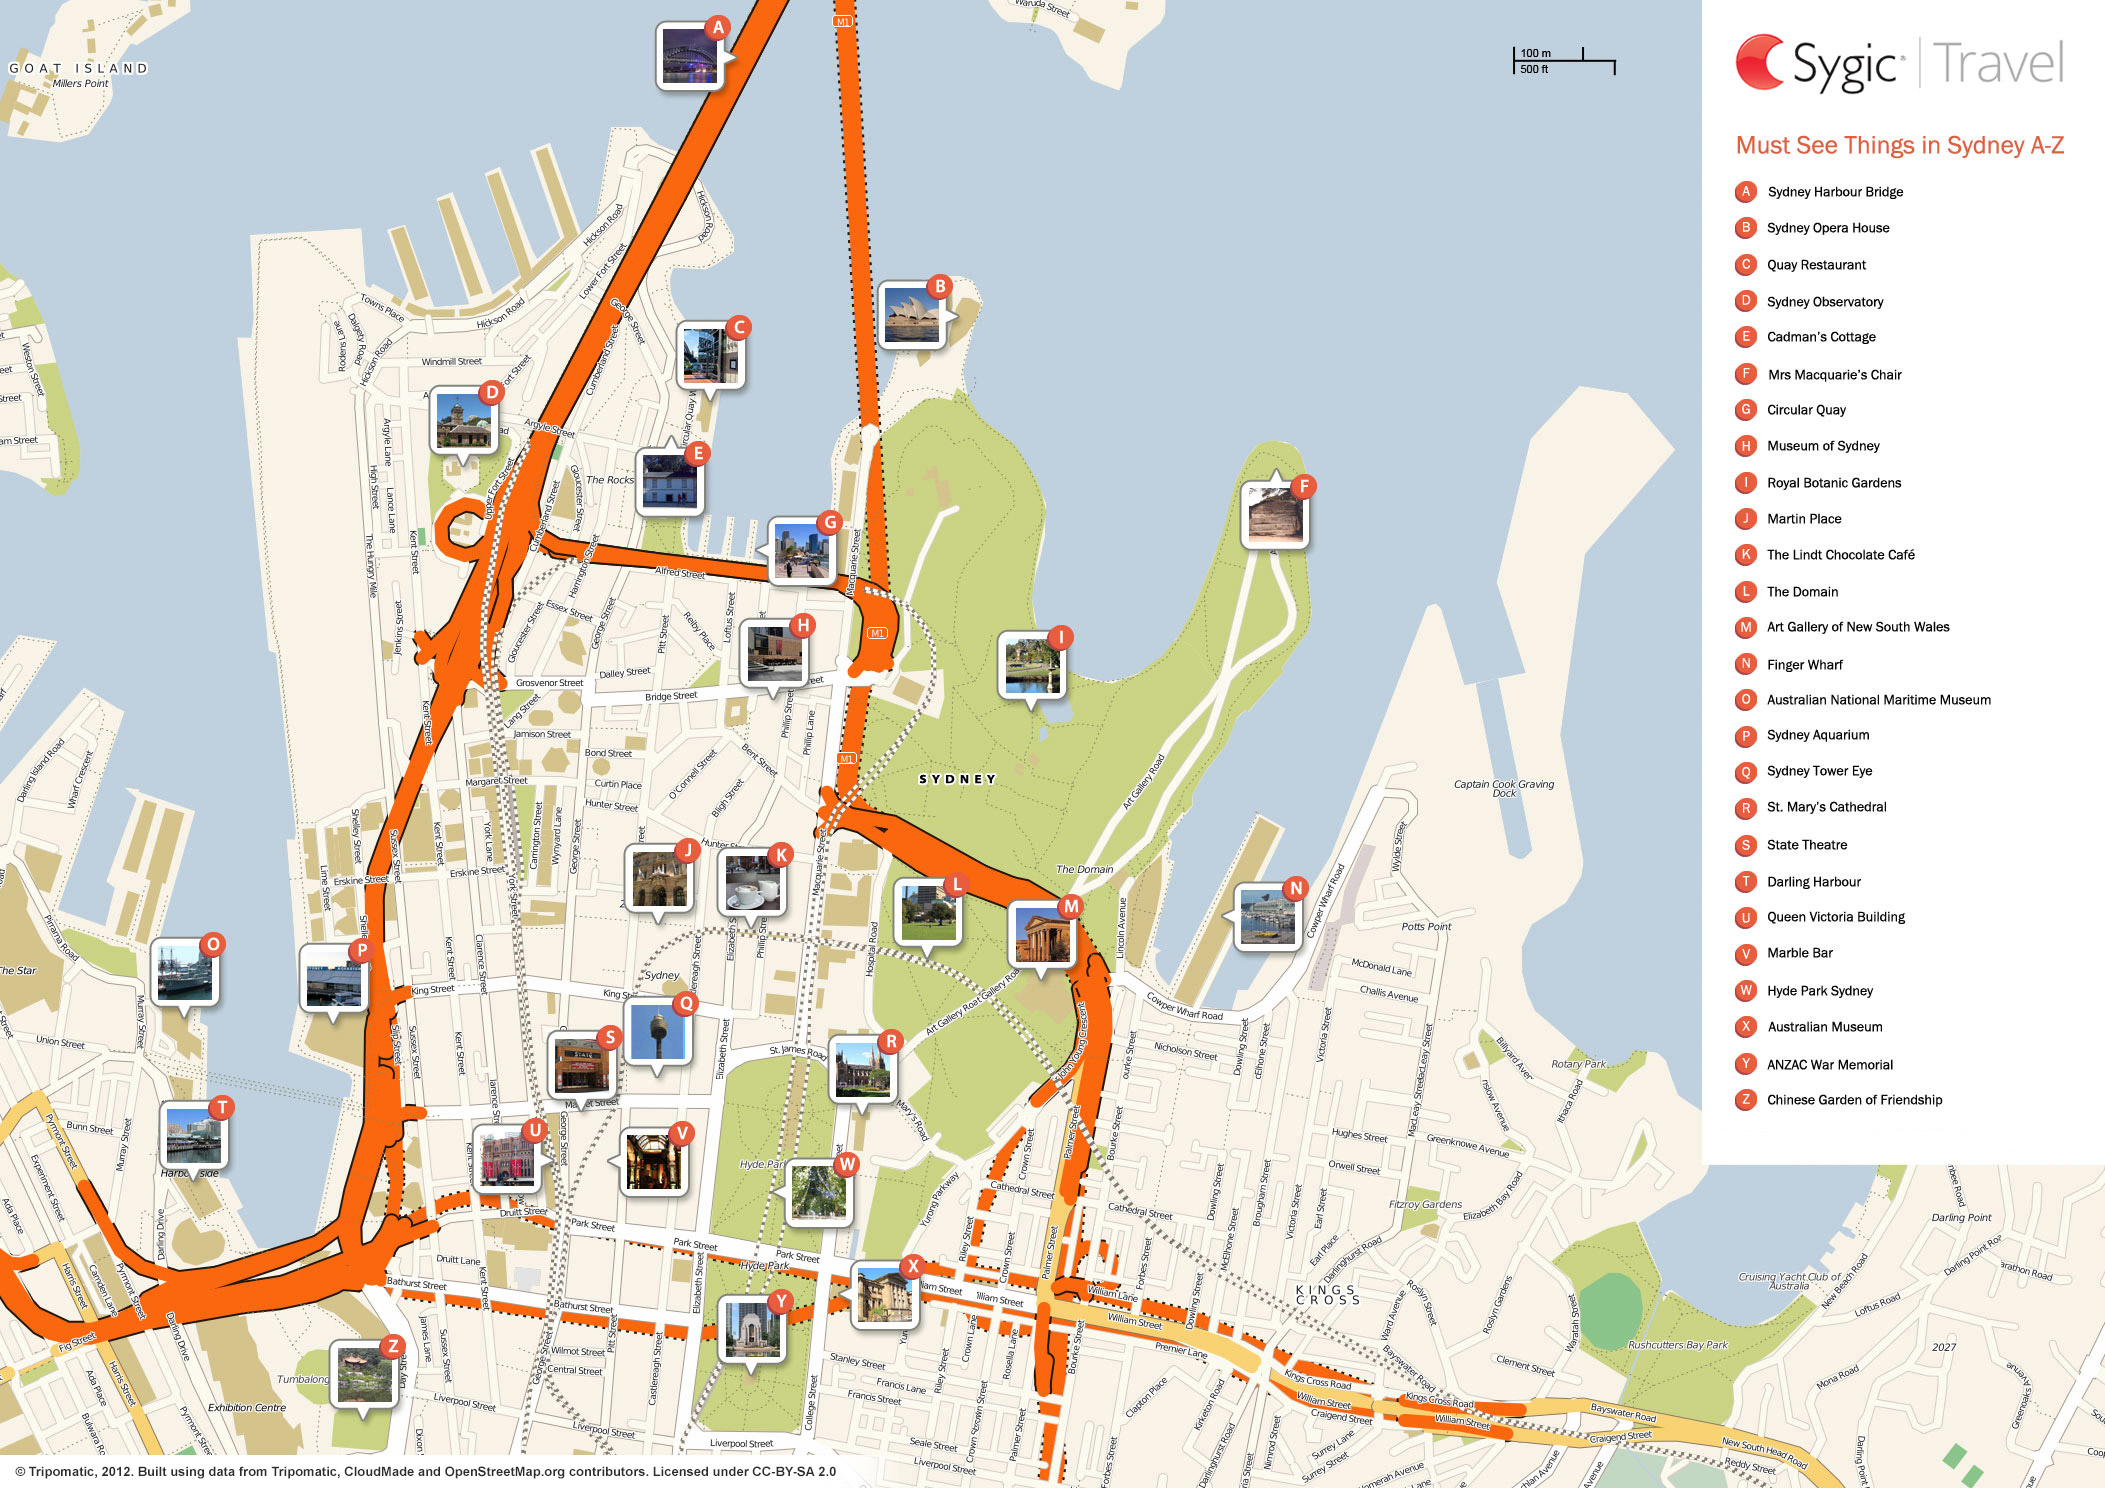 Melbourne Map Glen Waverley – Melbourne Map For Tourist